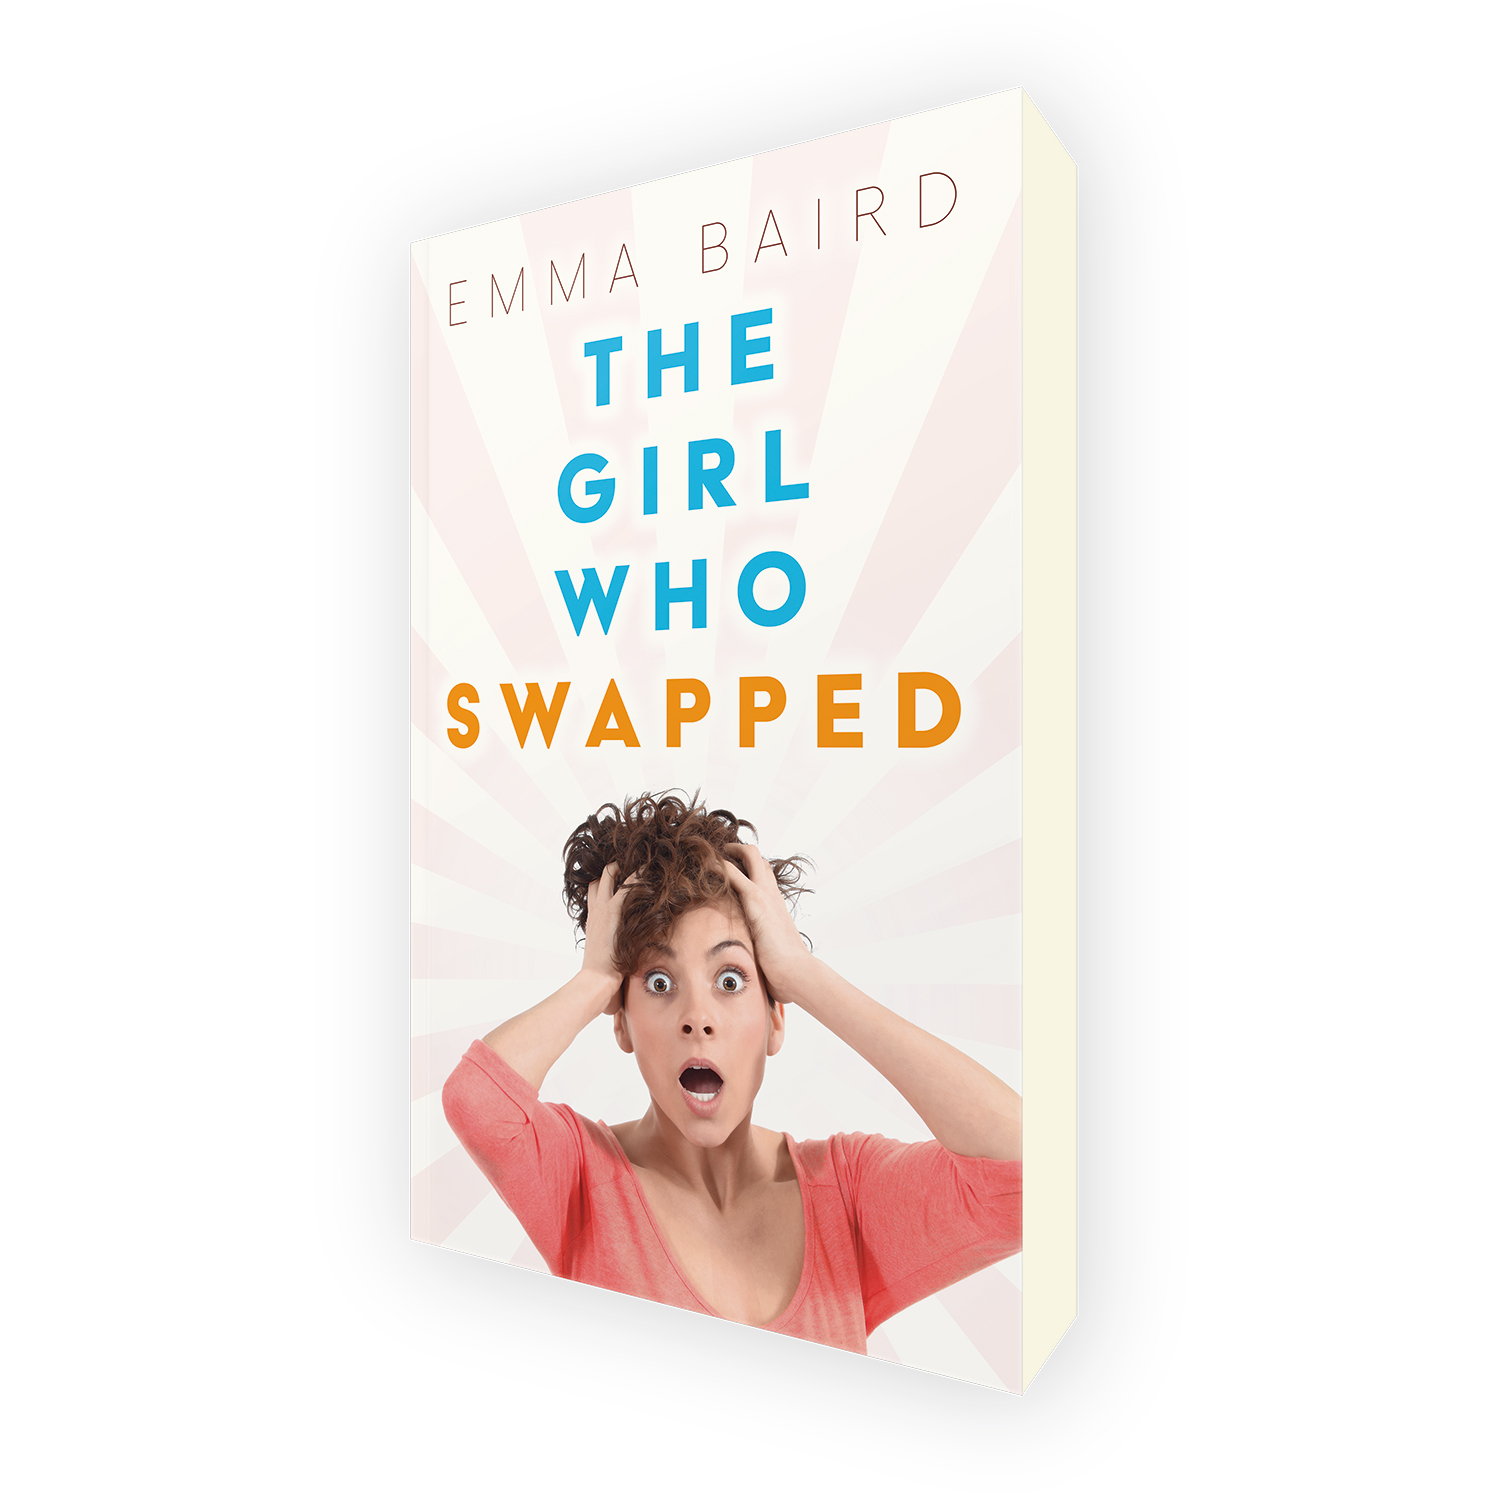 'The Girl Who Swapped' is a great chic-lit, body-swap, time-travel romcom, by author Emma Baird. The book cover & interior were designed by Mark Thomas, of coverness.com. To find out more about my book design services, please visit www.coverness.com.